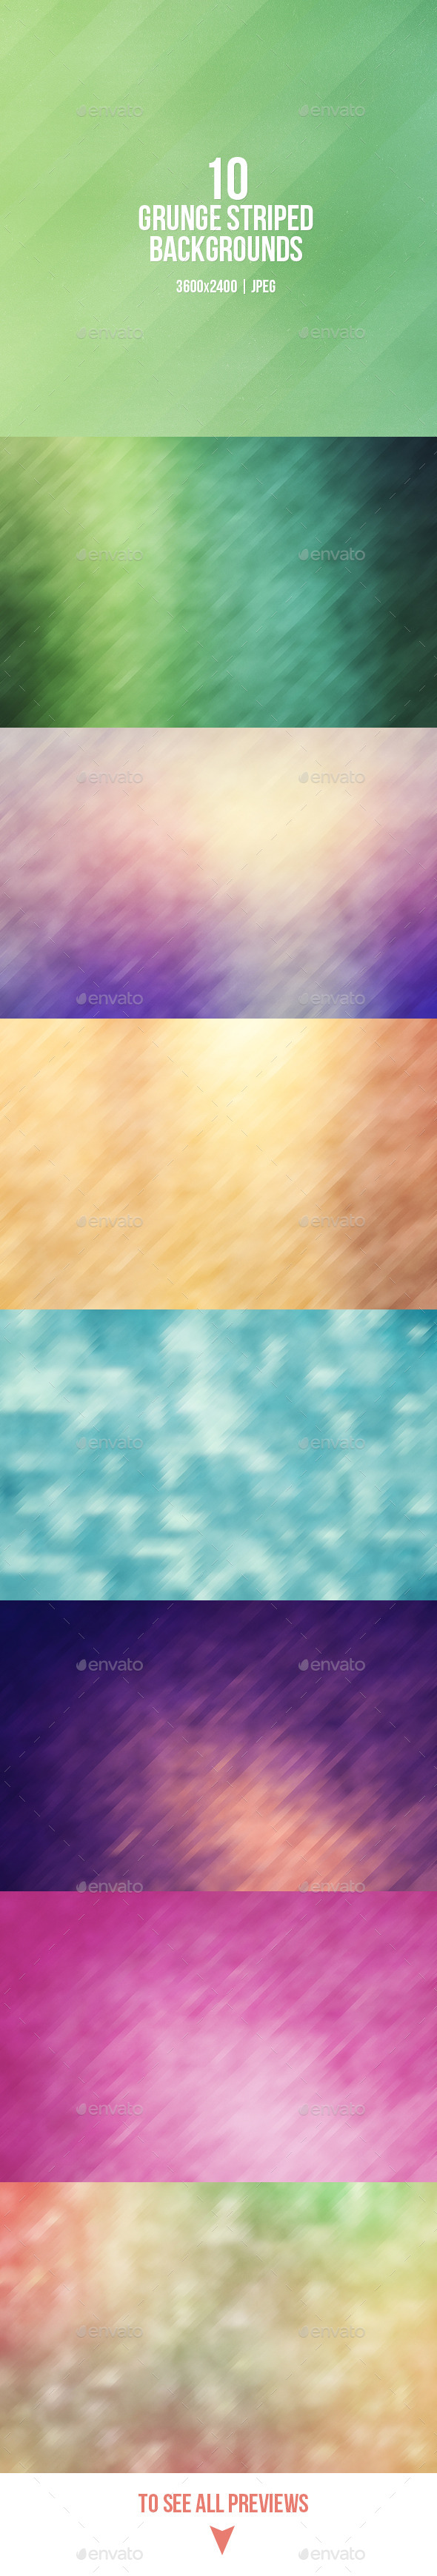 GraphicRiver Grunge Striped Backgrounds 9383556